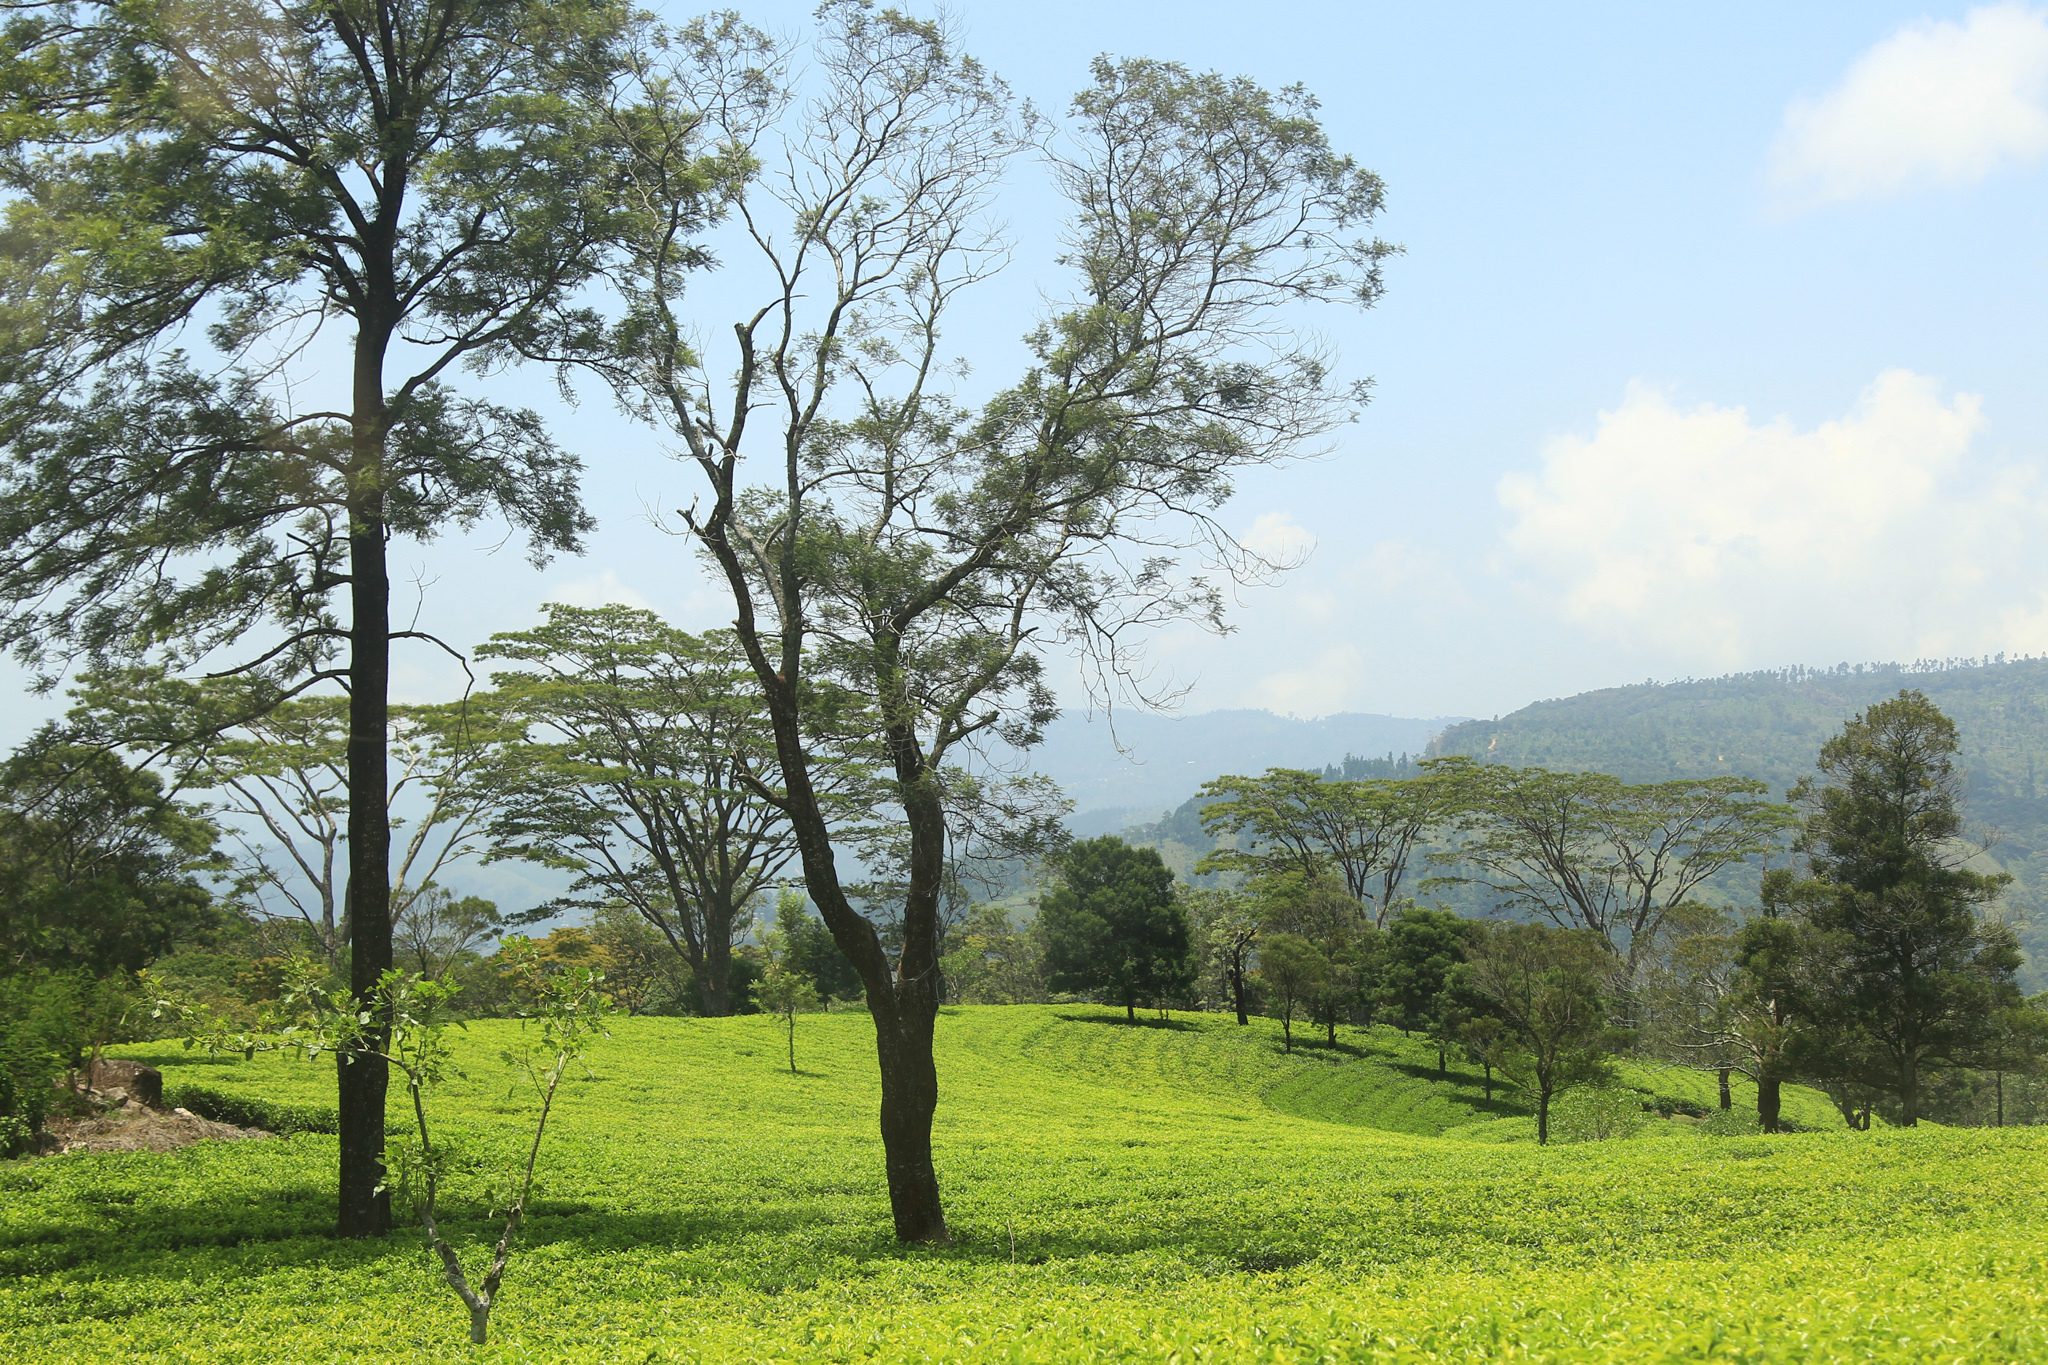 Kandy is a tea growing region in Sri Lanka